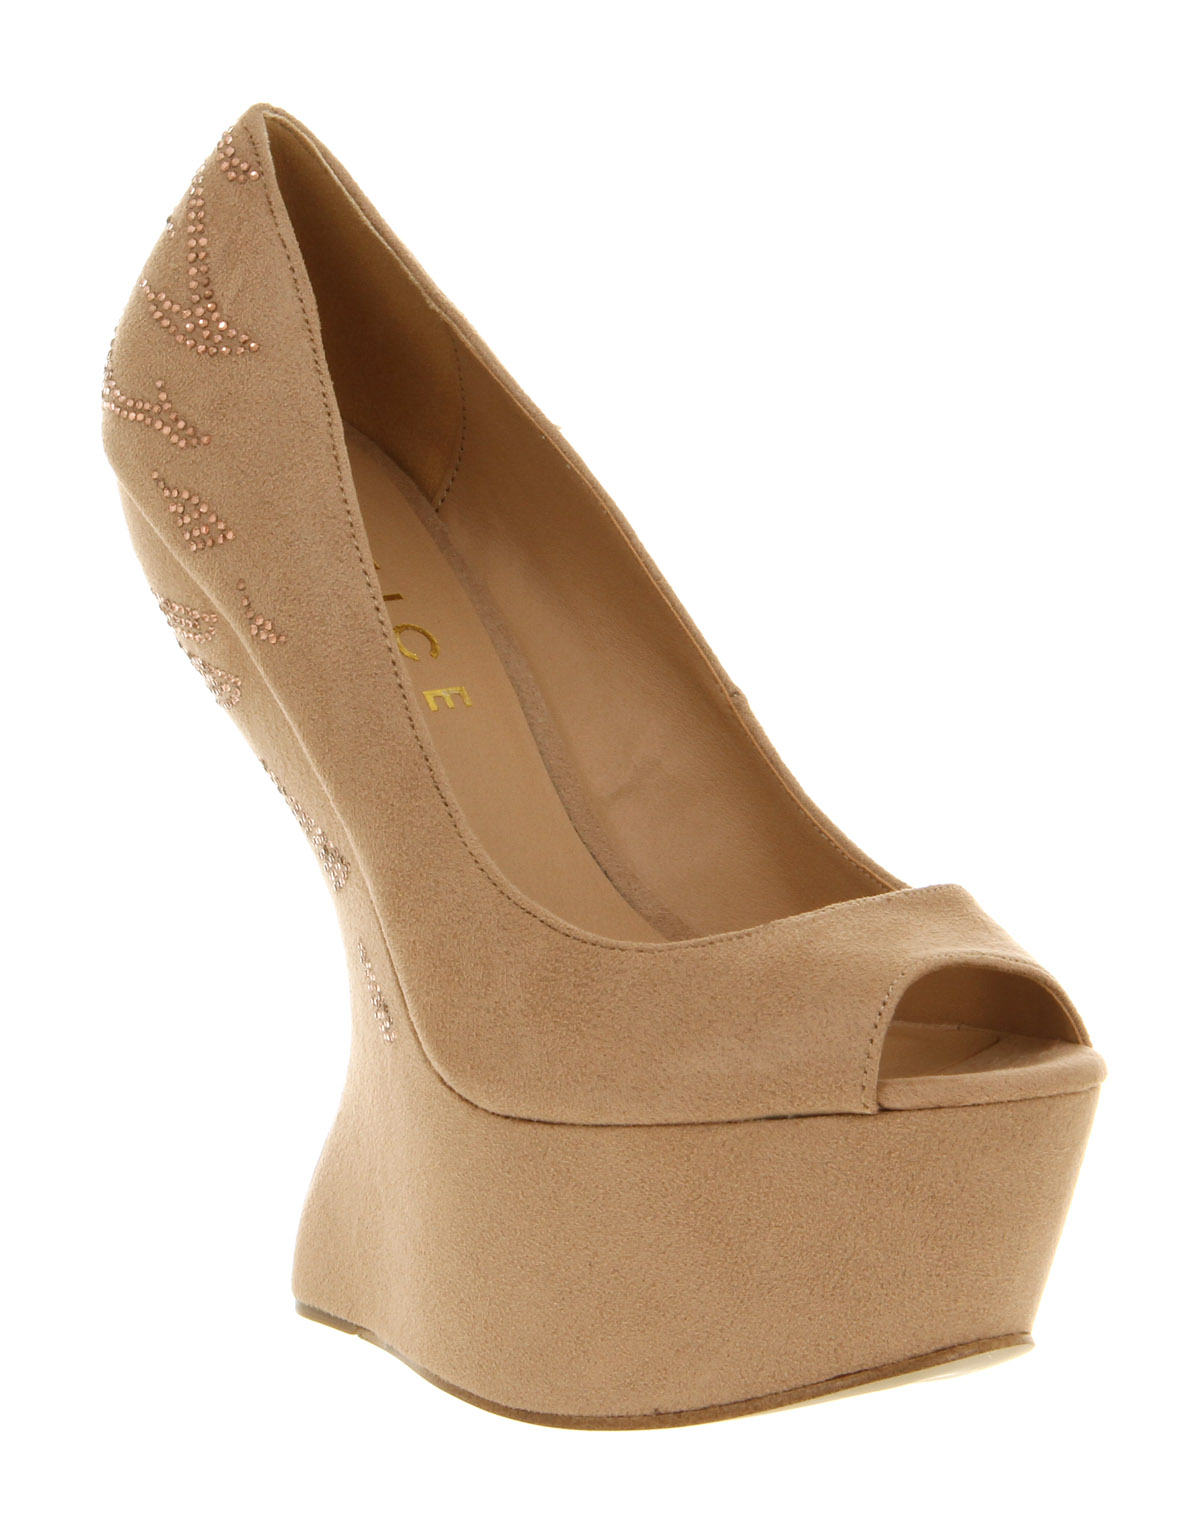 Has Anyone Of You Seen Such Wedges Anywhere? The Colour Is Not So Important    It Can Be Either Black, Red, White Or Beige As In This Picture.